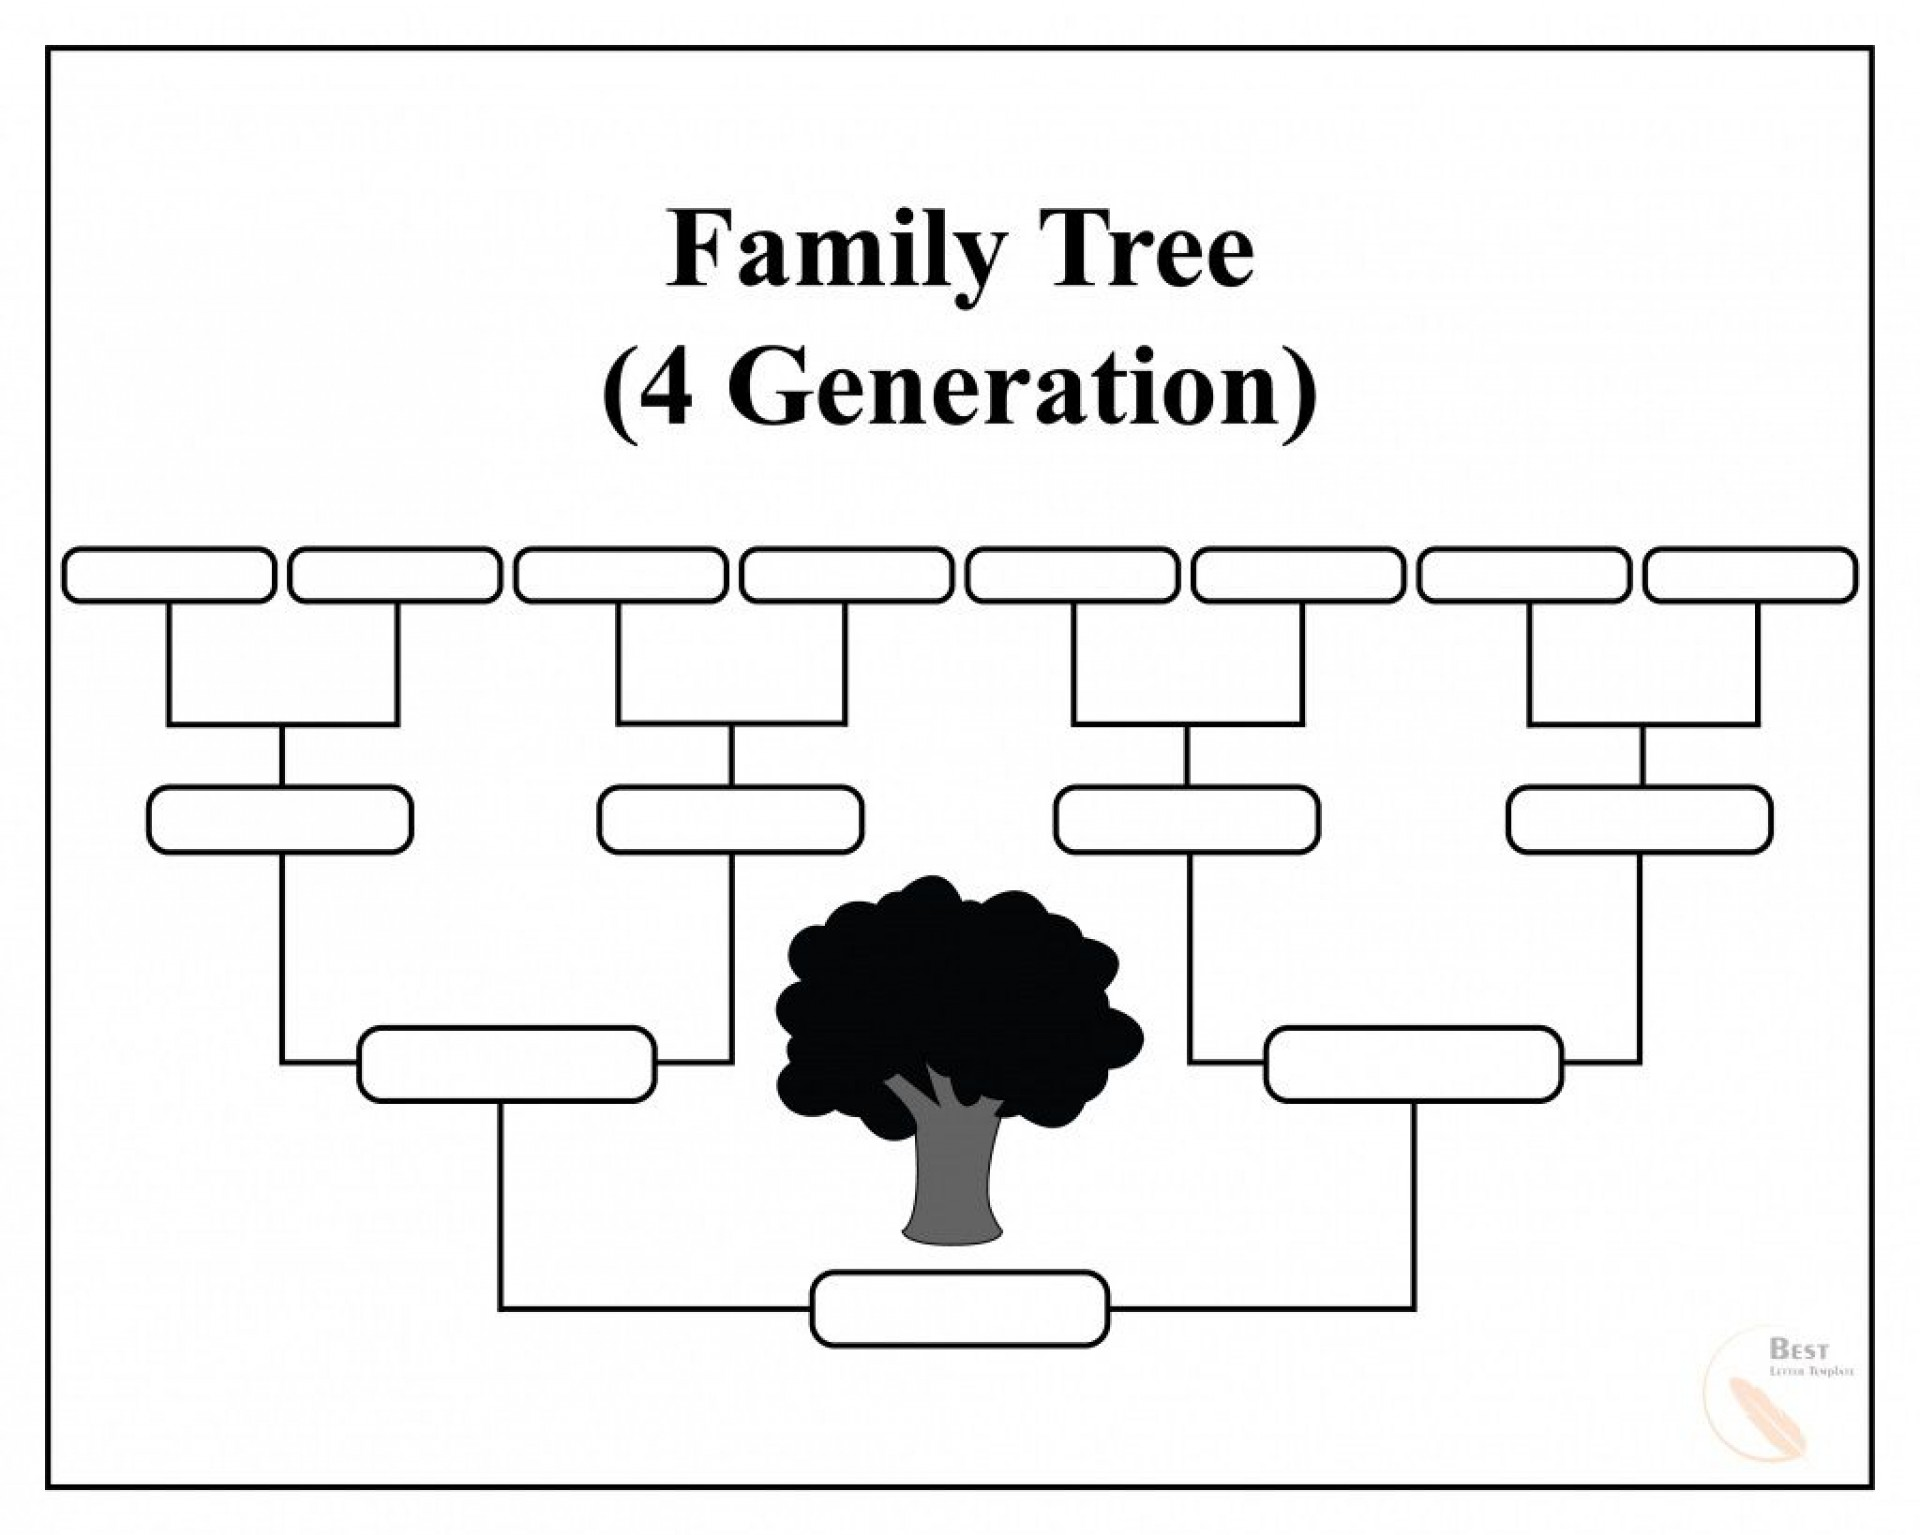 000 Marvelou Family Tree Template Google Doc Inspiration  Docs I There A On Free Editable1920